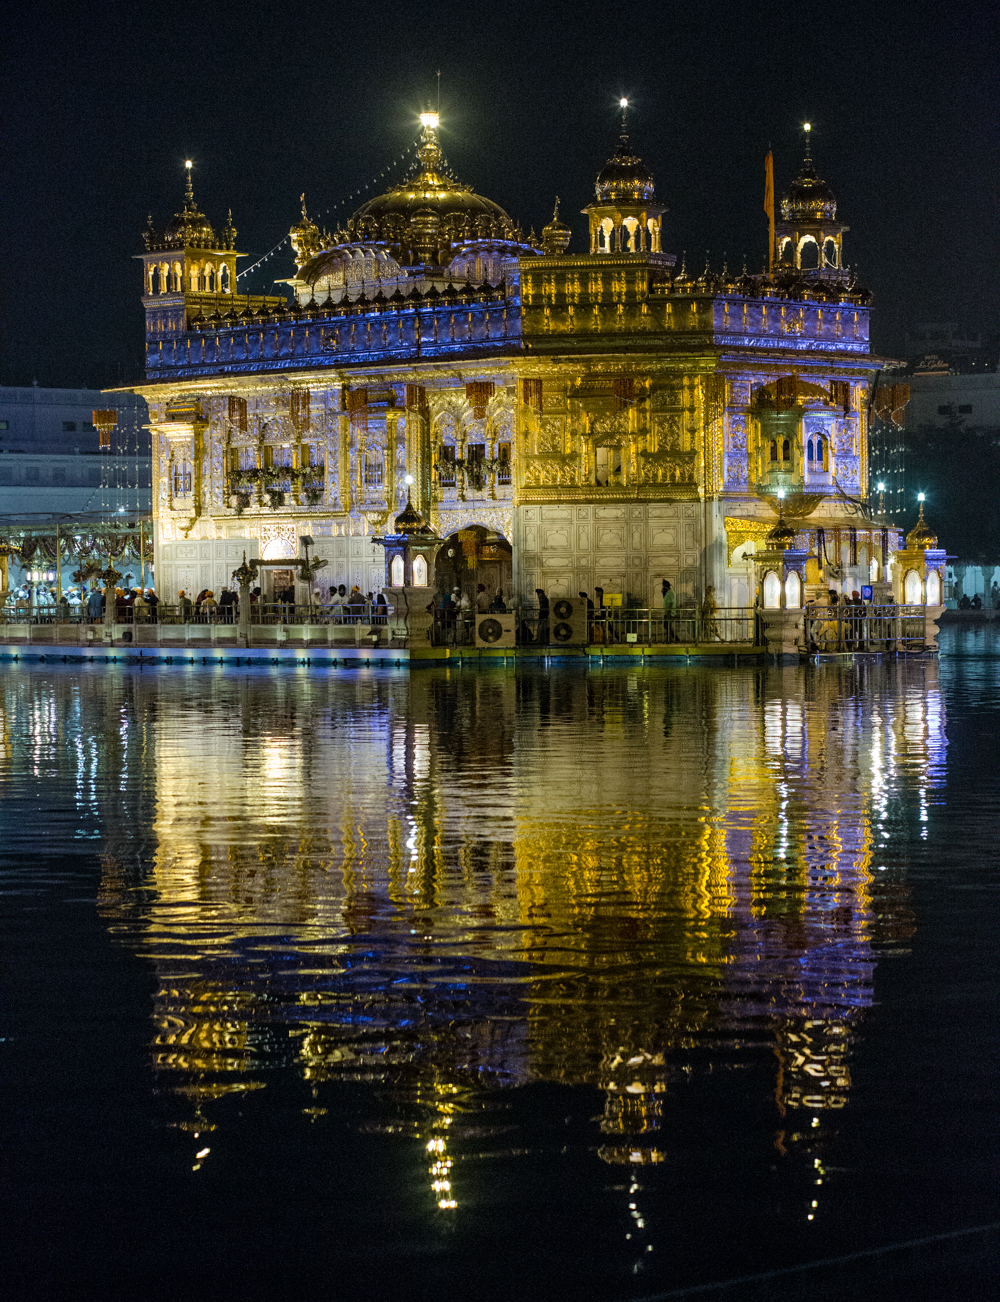 The Golden Temple of Amritsar. The Temple is India's most visited monument, drawing more visitors that even the Taj Mahal.